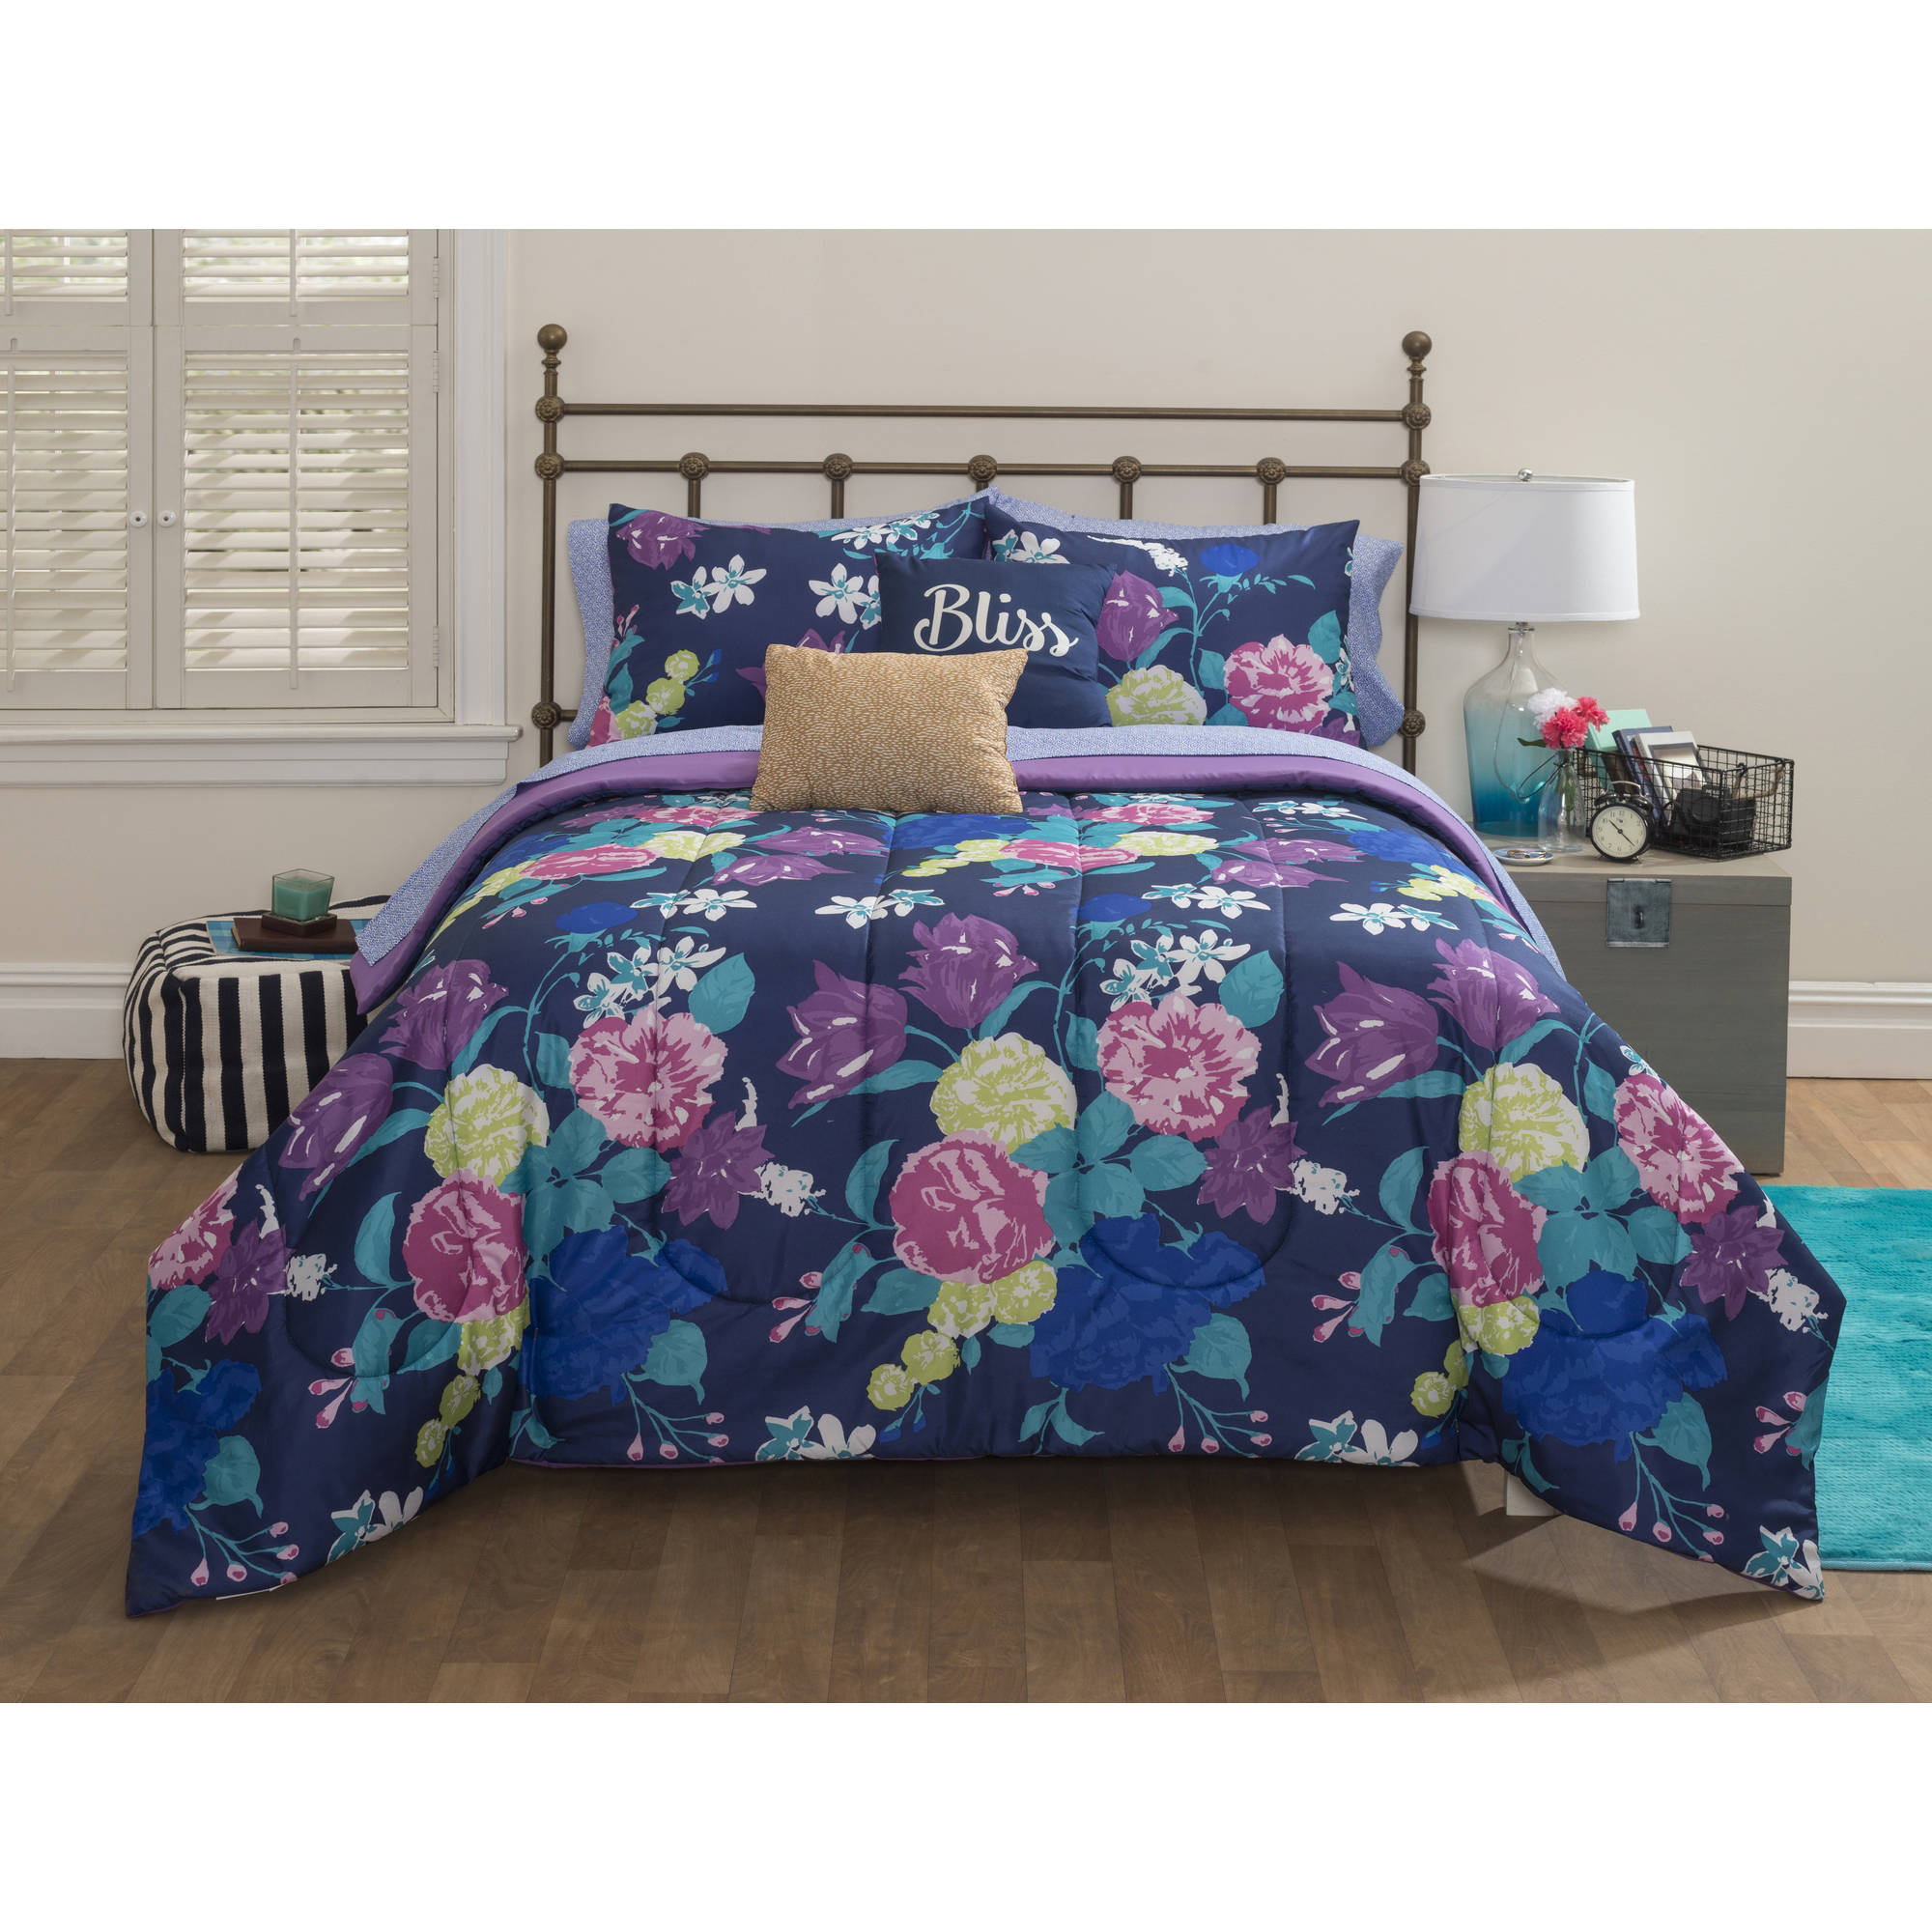 Latitude Secret Garden Bed in a Bag Bedding Set